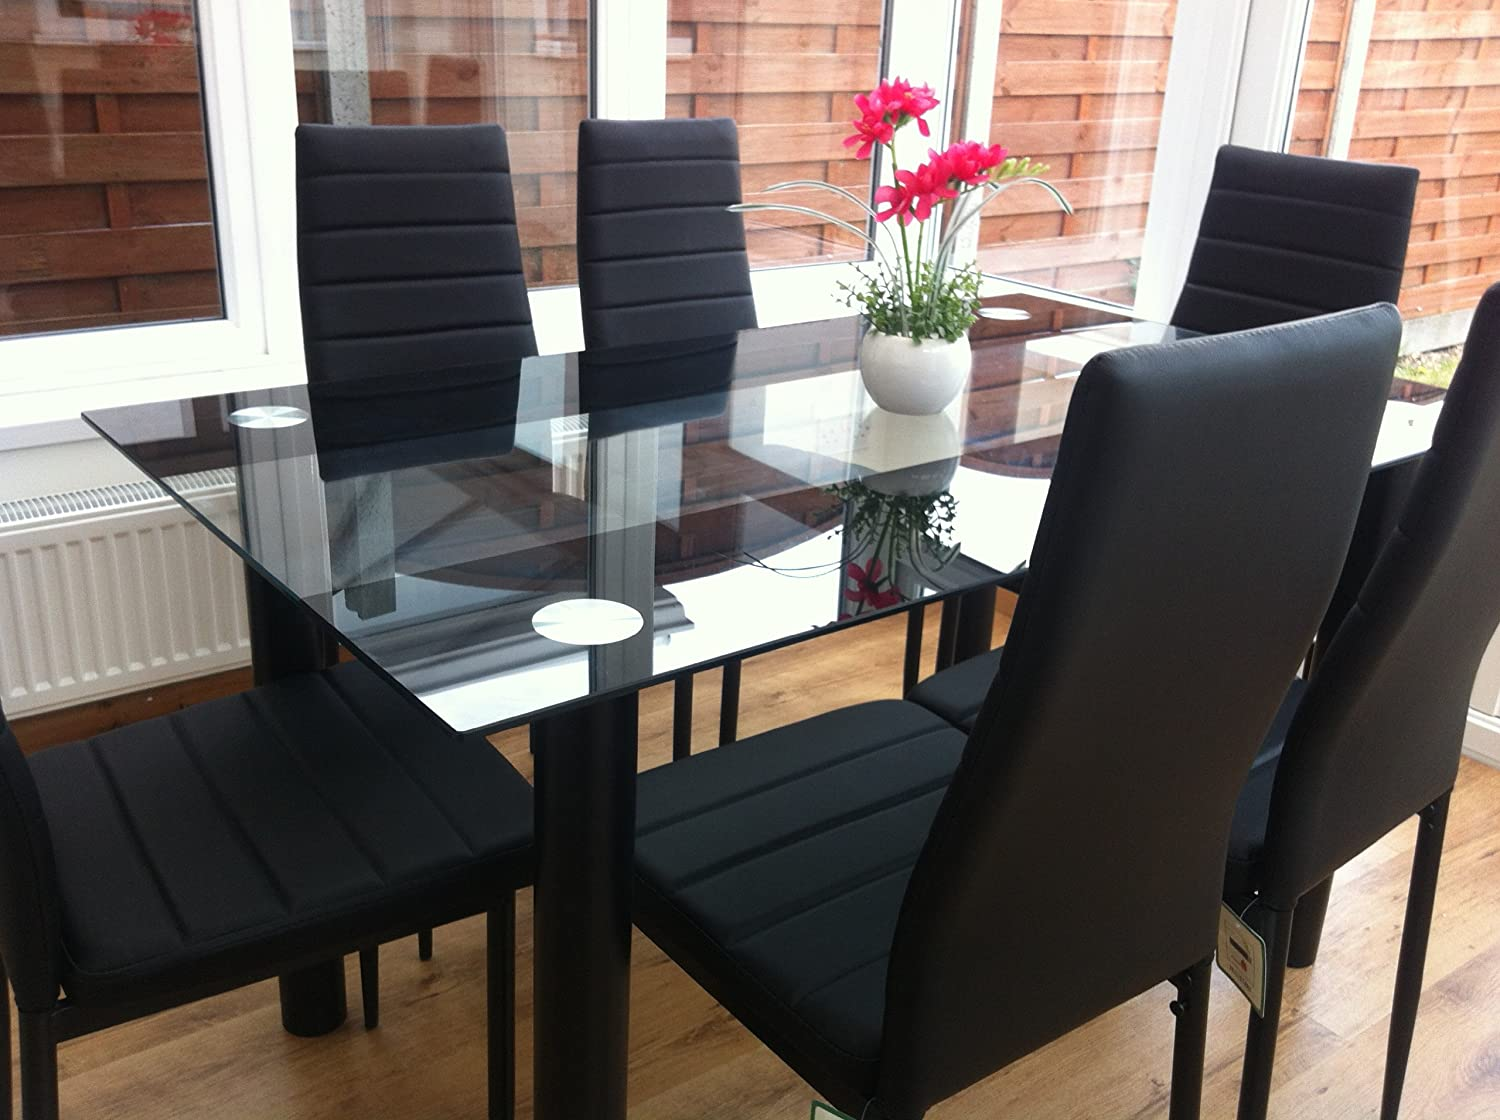 STUNNING GLASS BLACK DINING TABLE SET AND 6 FAUX LEATHER CHAIRS...:  Amazon.co.uk: Kitchen U0026 Home